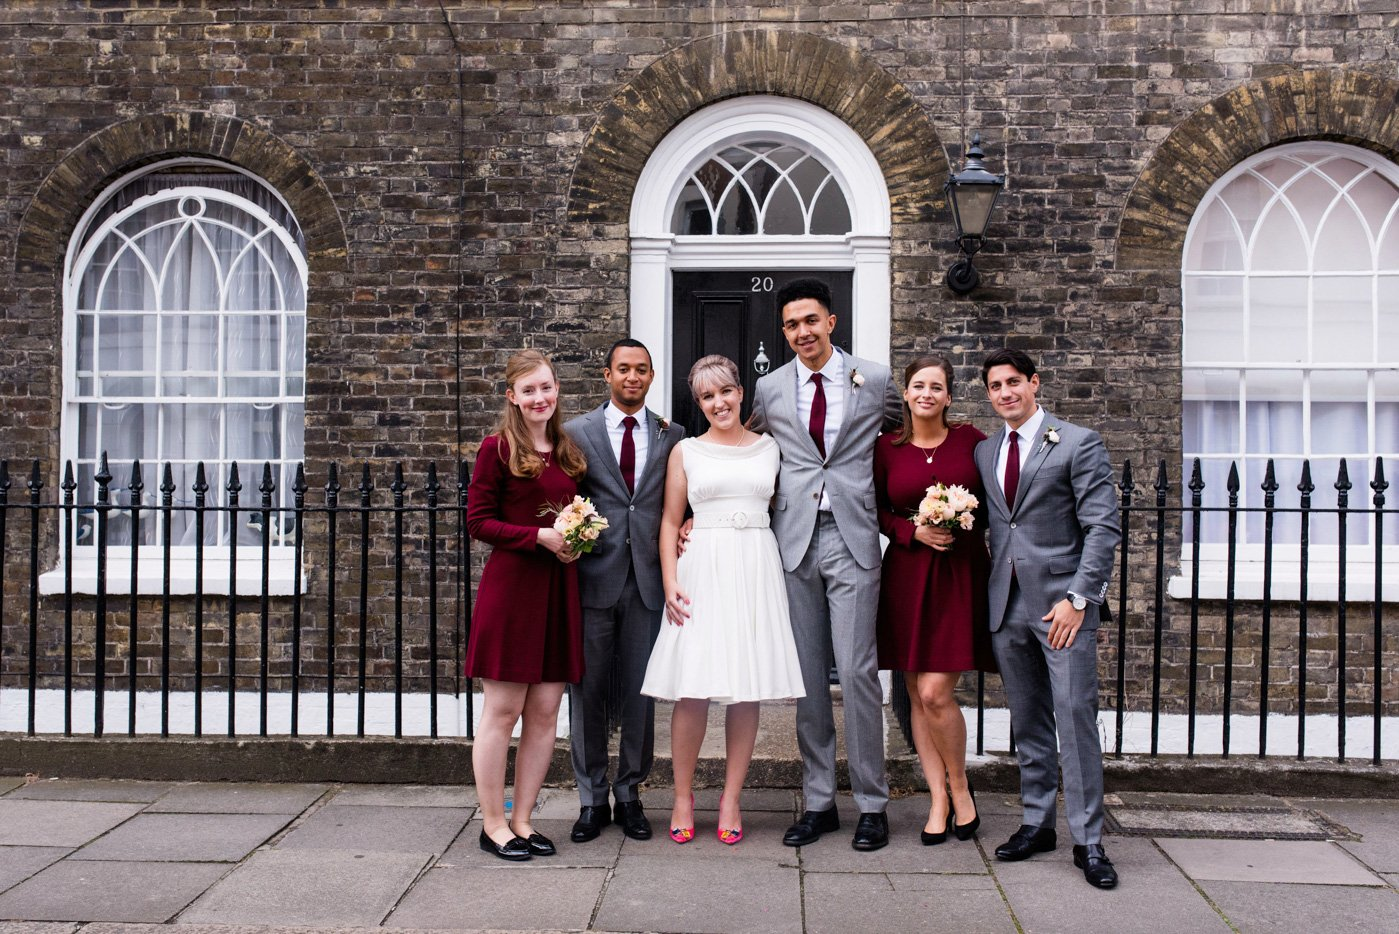 Vintage wedding style London